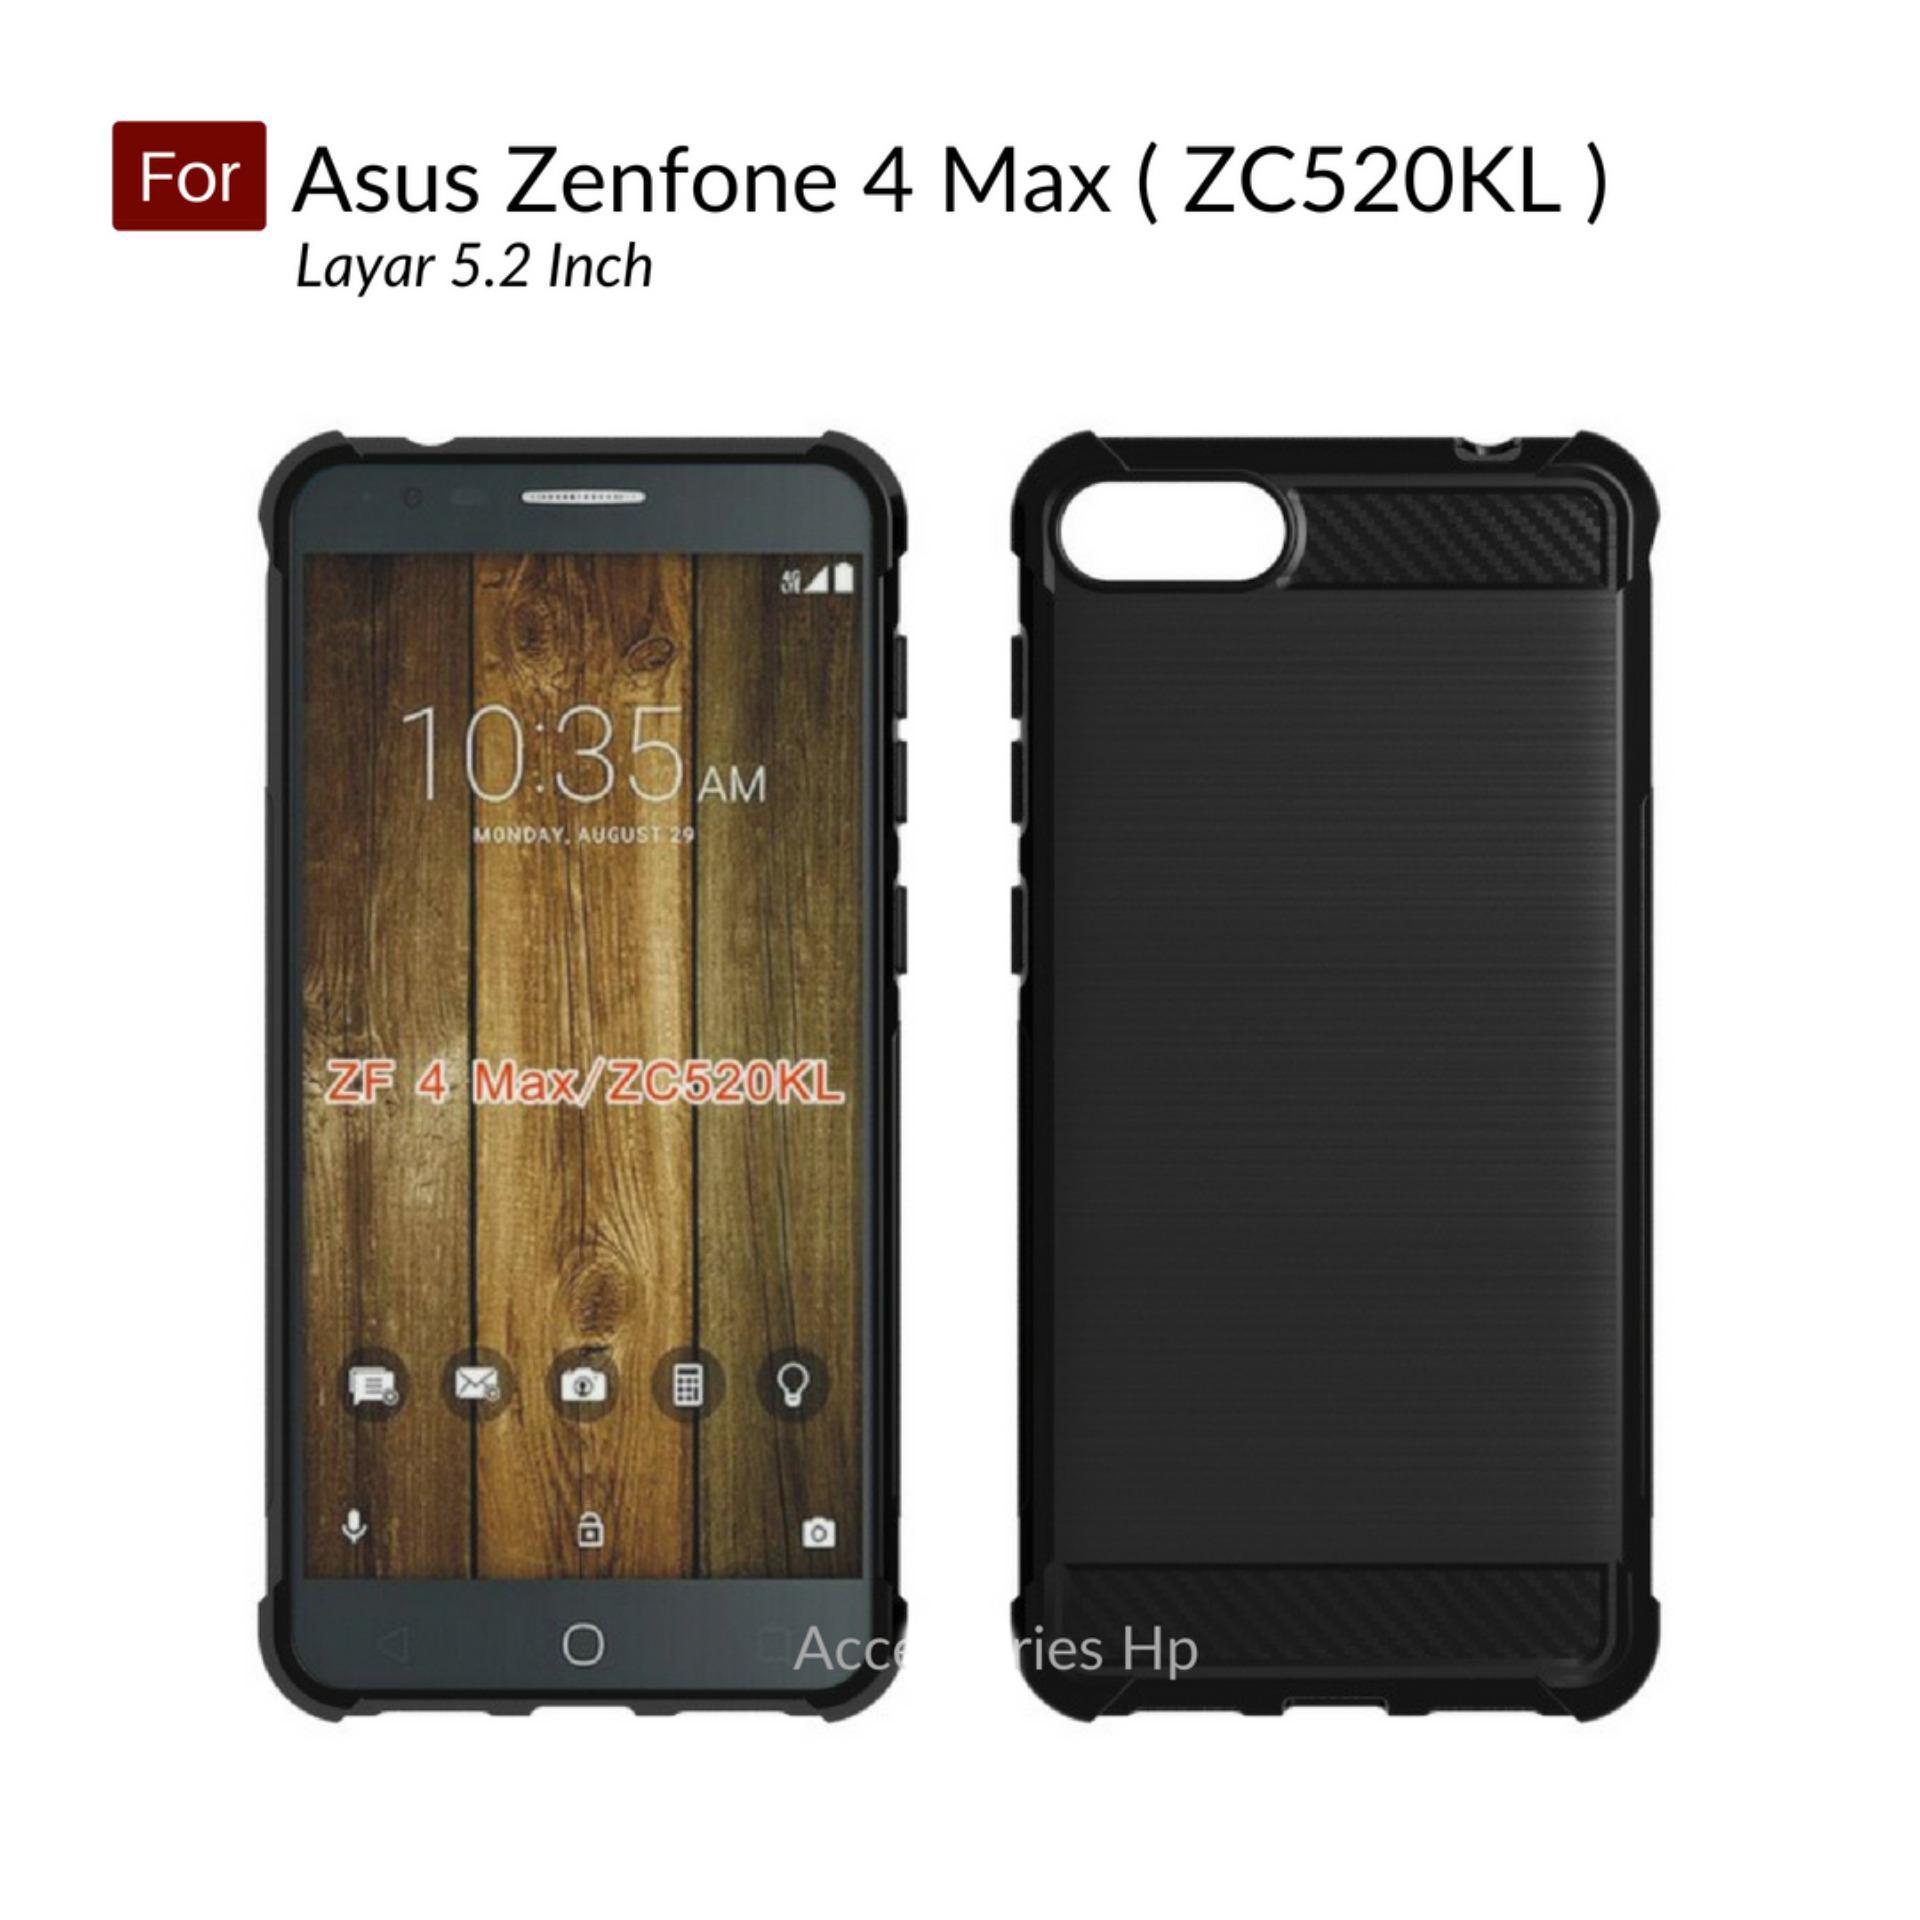 Accessories Hp Brushed Carbon Crack Case Asus Zenfone 4 Max 5.2 inch ( ZC520KL ) - Black